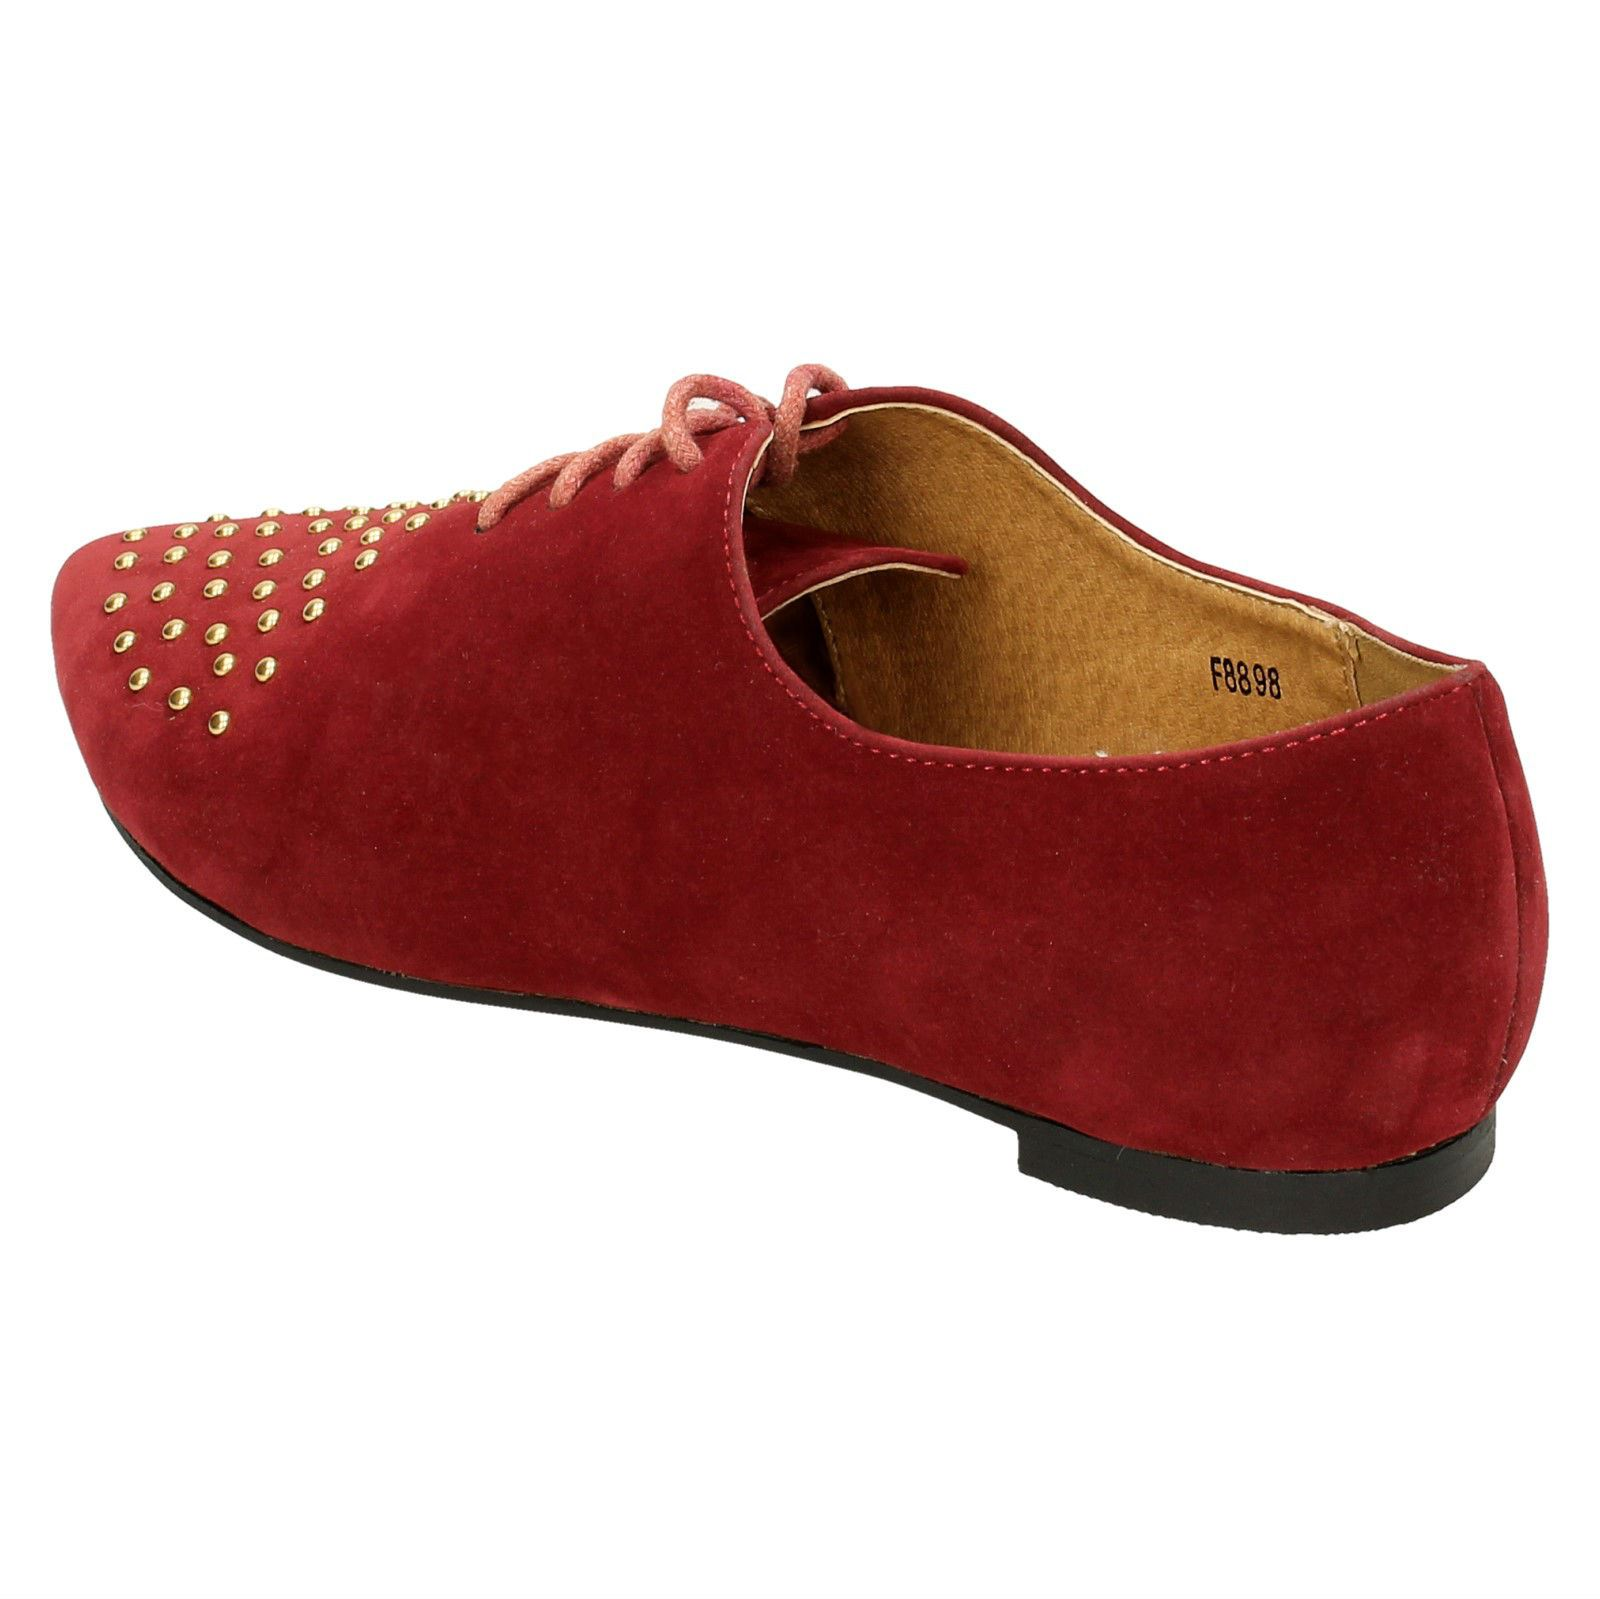 Spot-On-Ladies-Lace-Up-Shoes-with-Pointed-Toe thumbnail 13